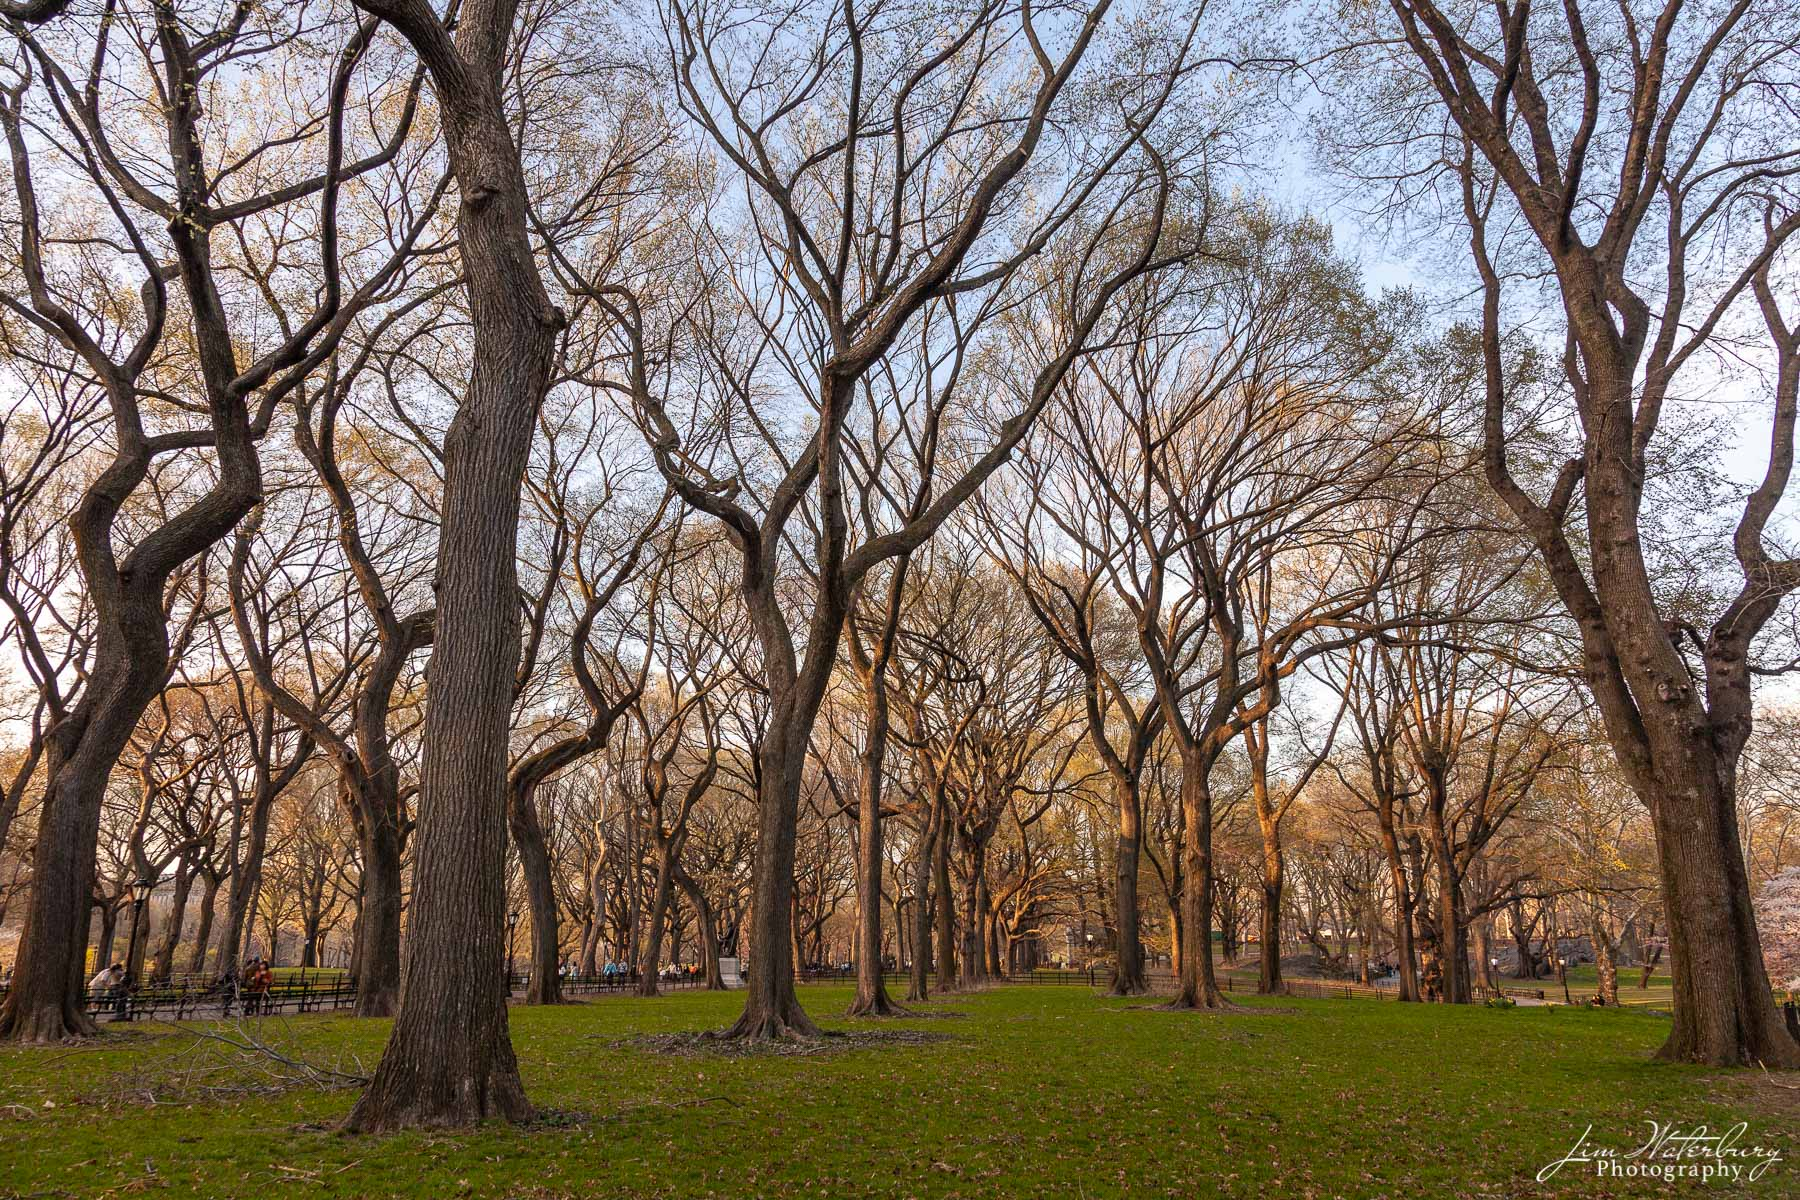 Central Park, New York, North America, United States, trees, photo